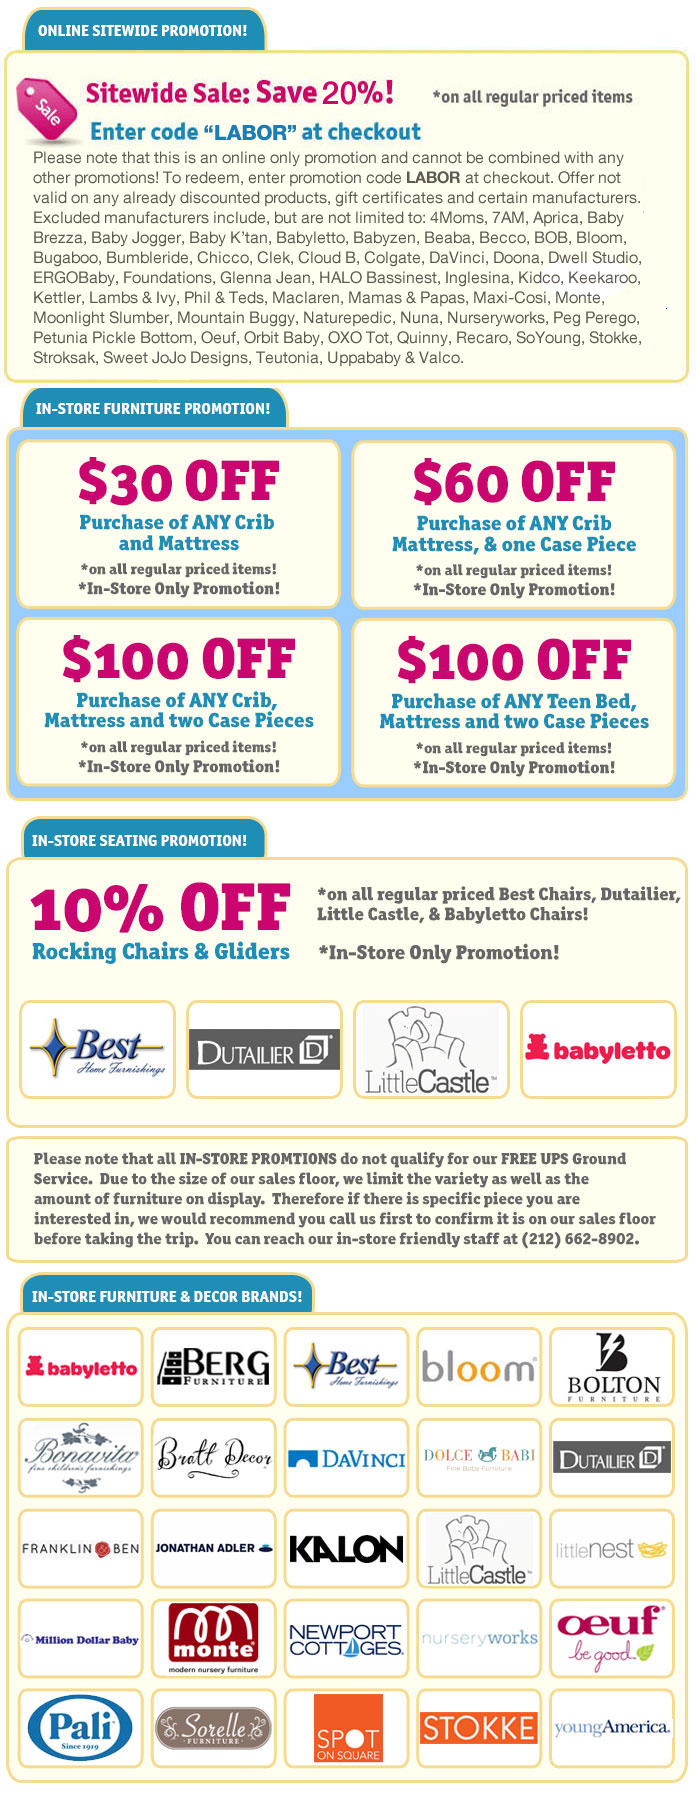 Labor Day Sale! Enter coupon code LABOR at checkout to save 20% on your Albee Baby Purchase